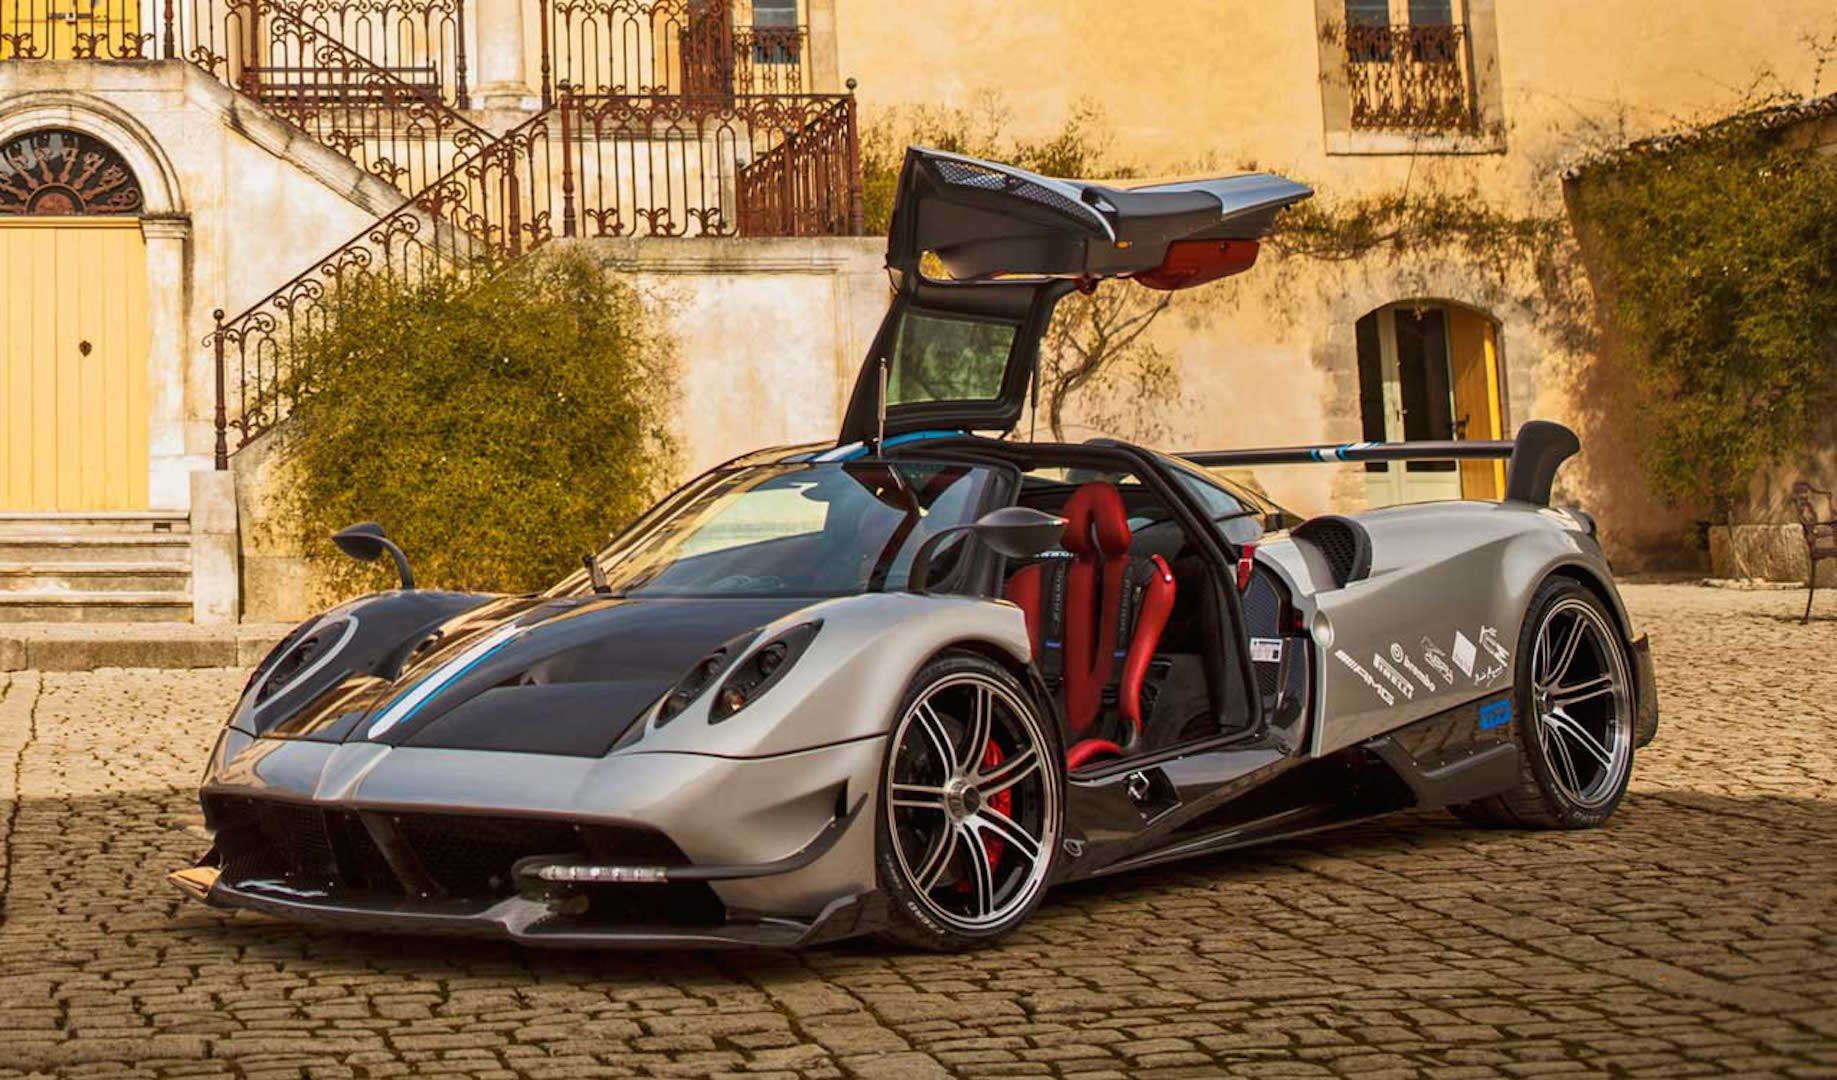 Pagani Huayra BC U2014 $2.8 Million Top 10 Most Expensive Cars In The World